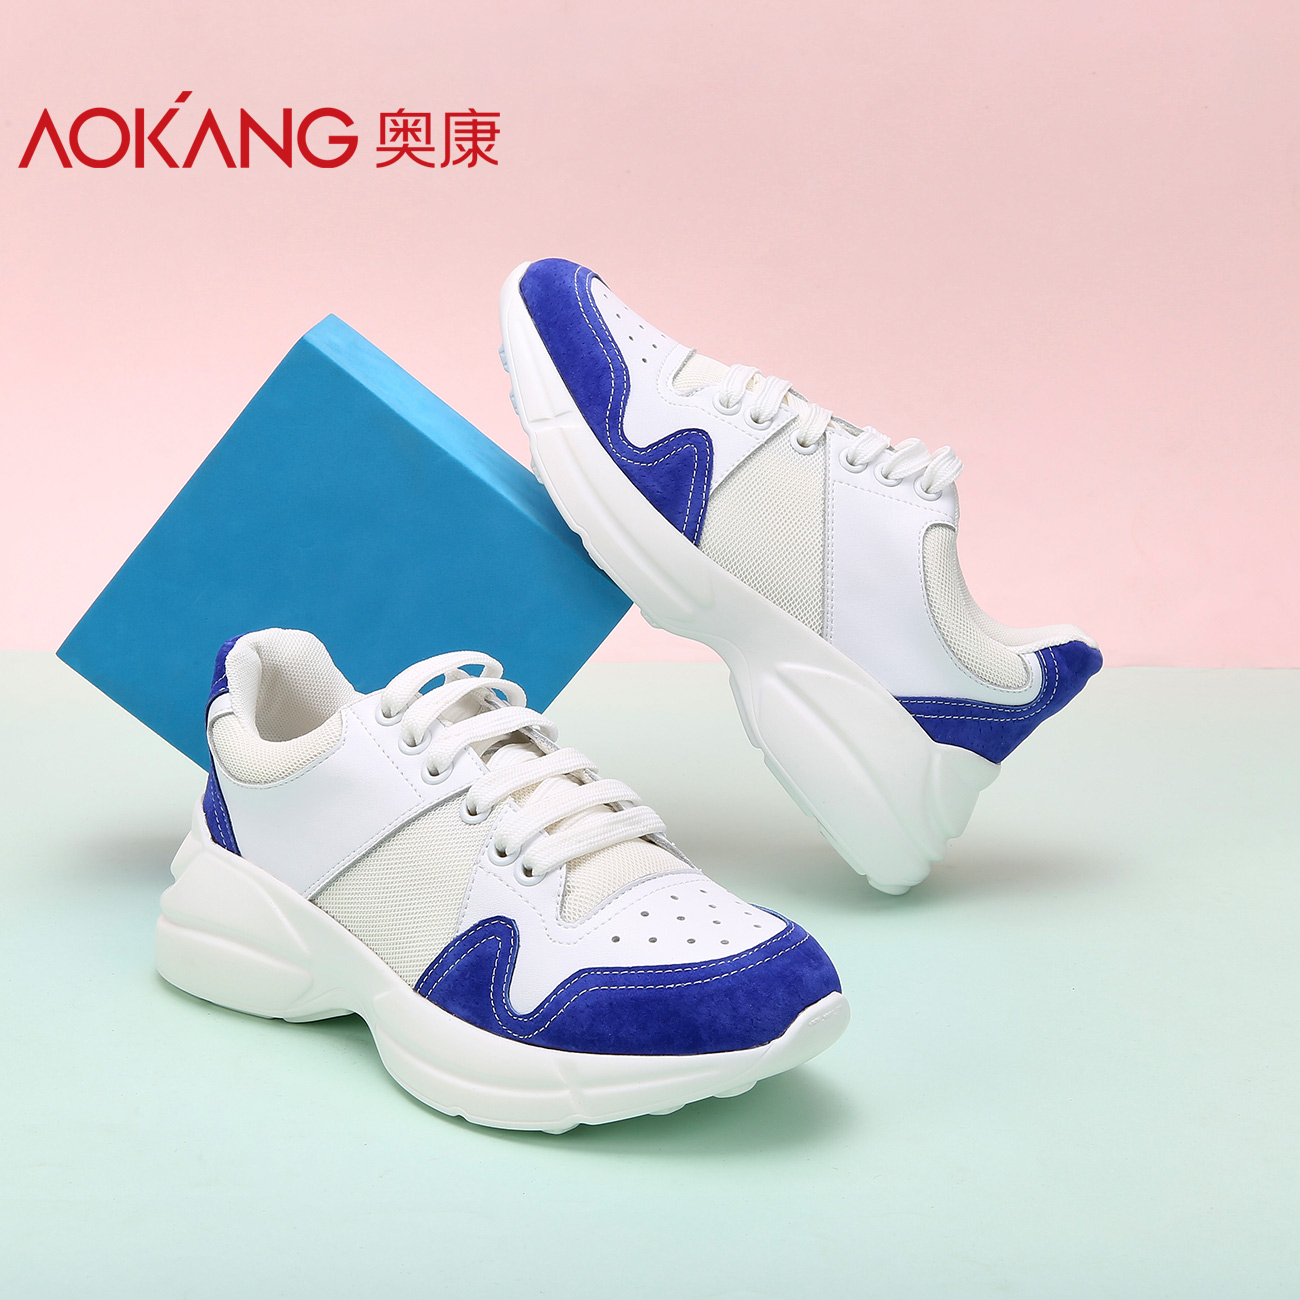 Aokang women's shoes 2018 summer new youth fashion thick-soled old shoes sports style casual shoes single shoes women